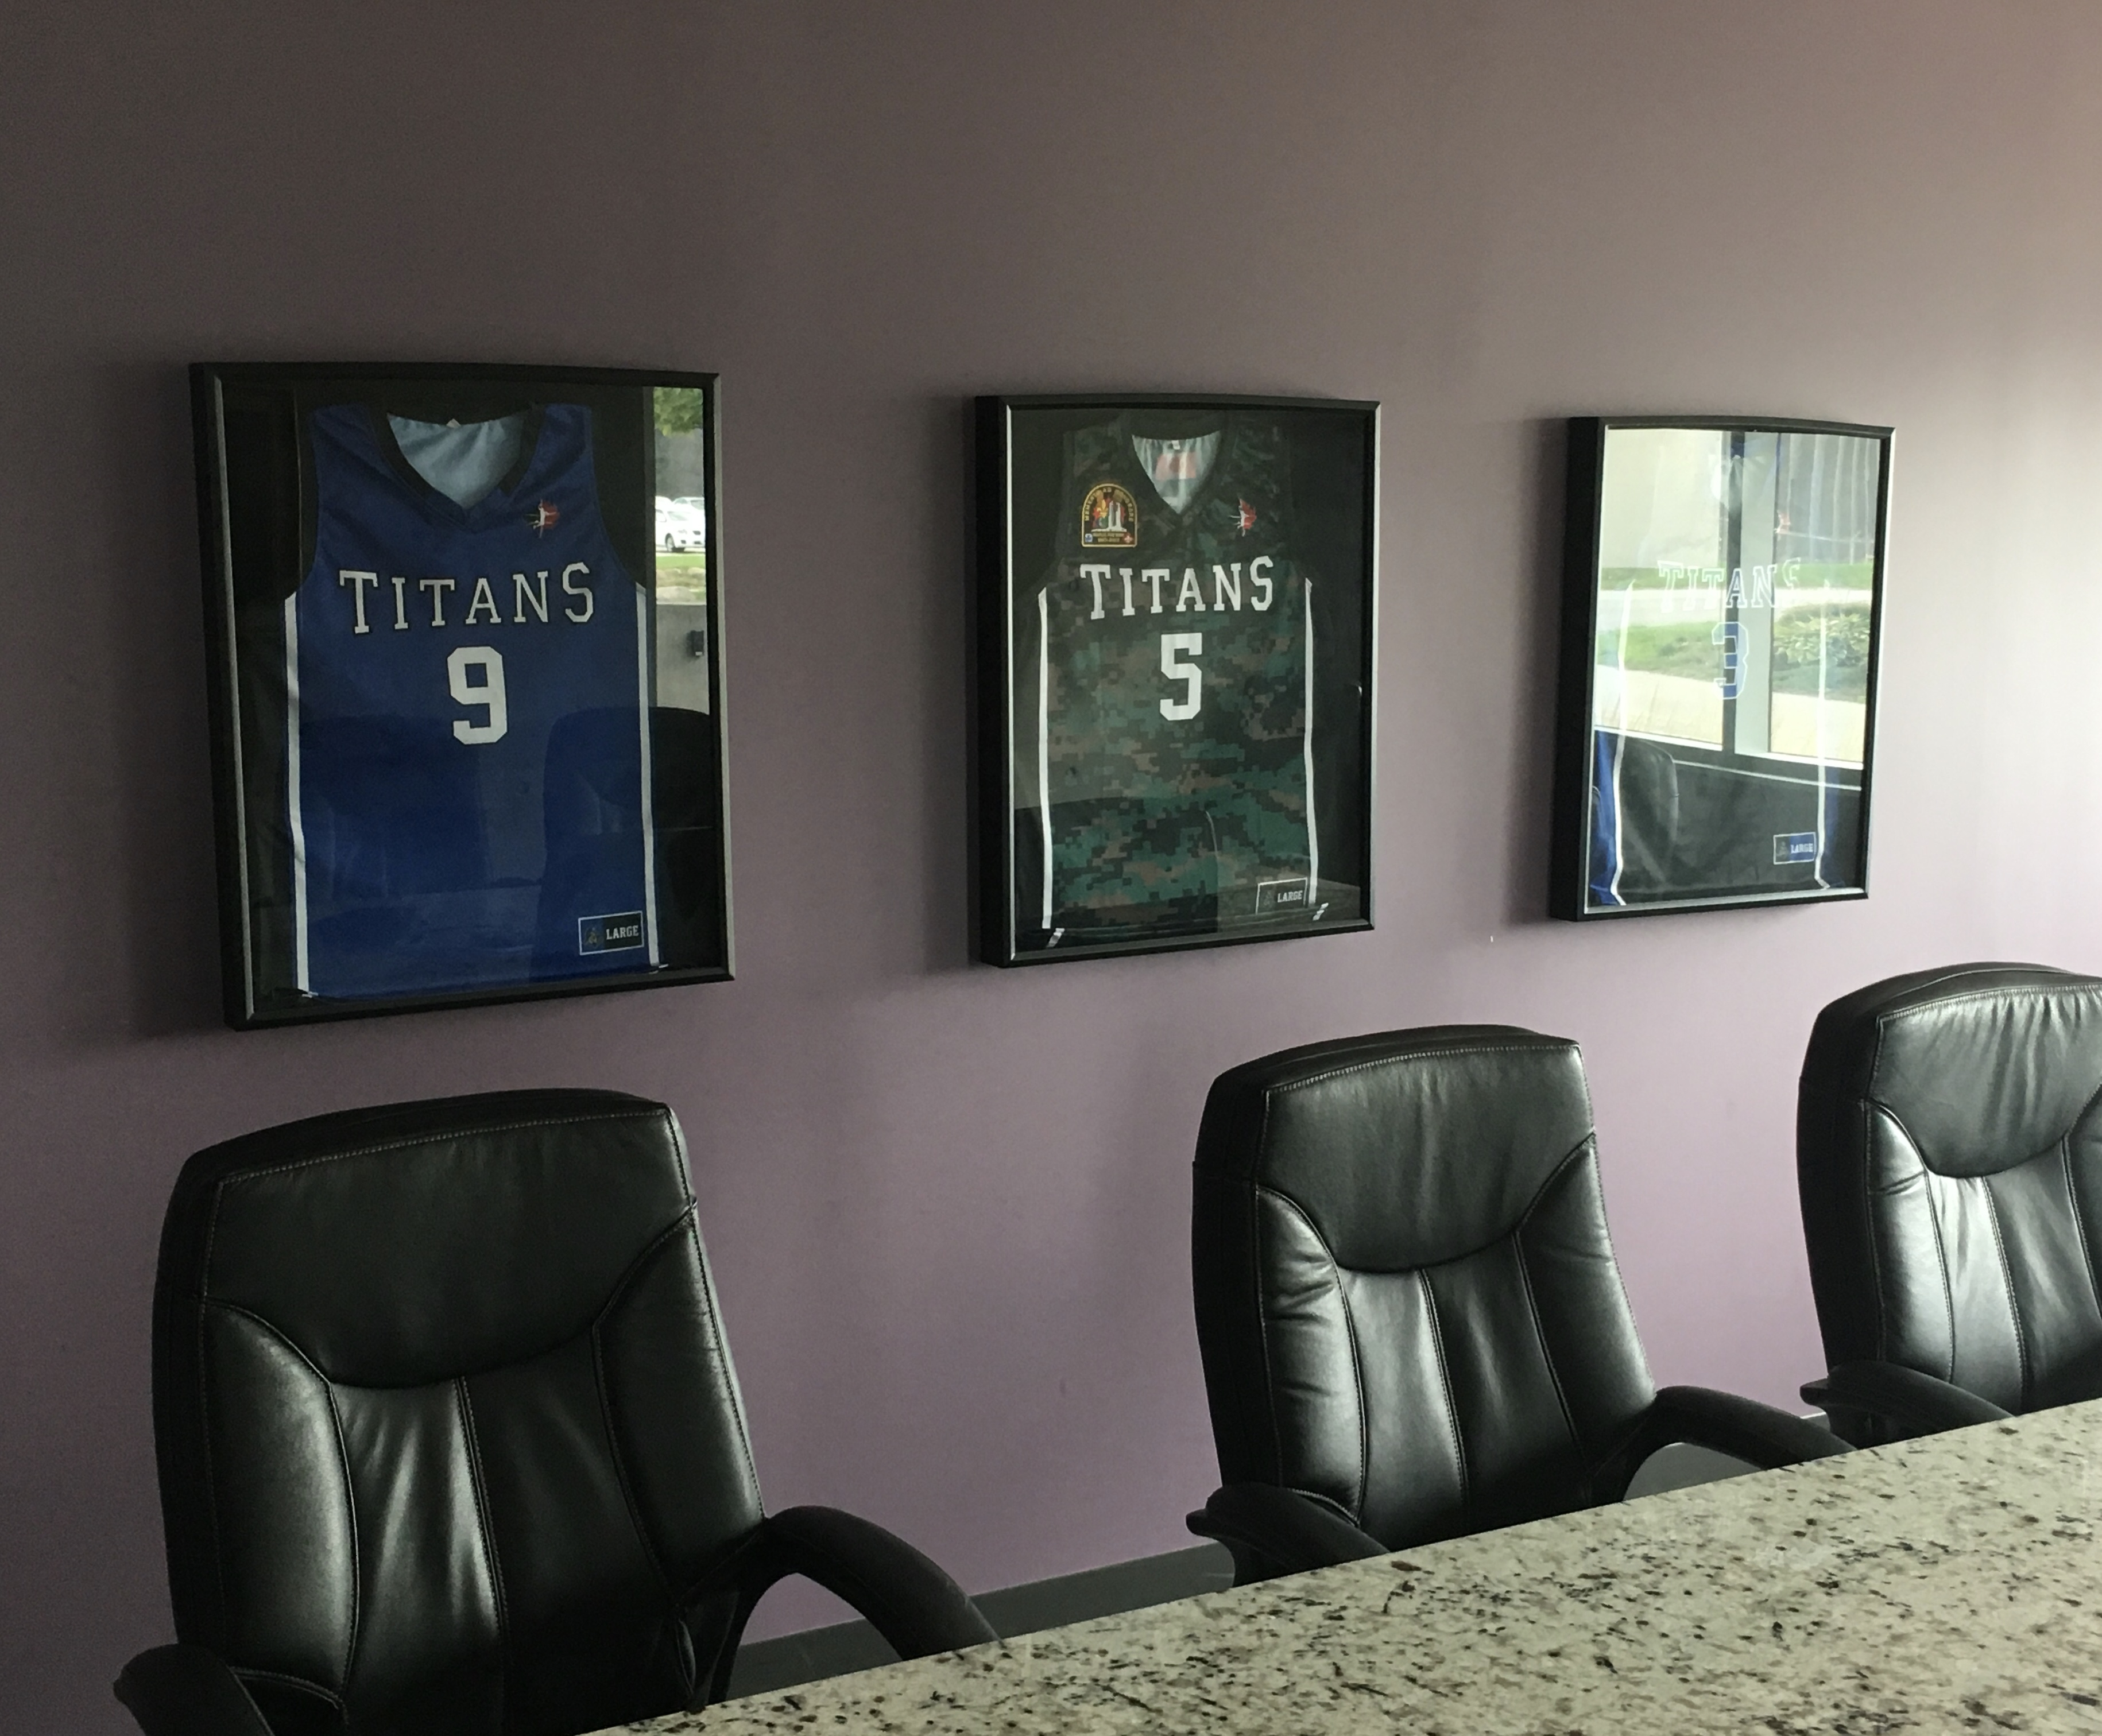 By Matthew Nowell, Spoke News After a campaign that left a lot to be desired last year, the region's first-ever professional basketball team, the KW Titans, are looking to build off of their late-season progress for the upcoming 2018/2019 NBL-Canada schedule. With just a few weeks left before training camp officially kicks off for the Titans, fans and members of the organization alike have a lot to be excited about. In the coming weeks, fans...